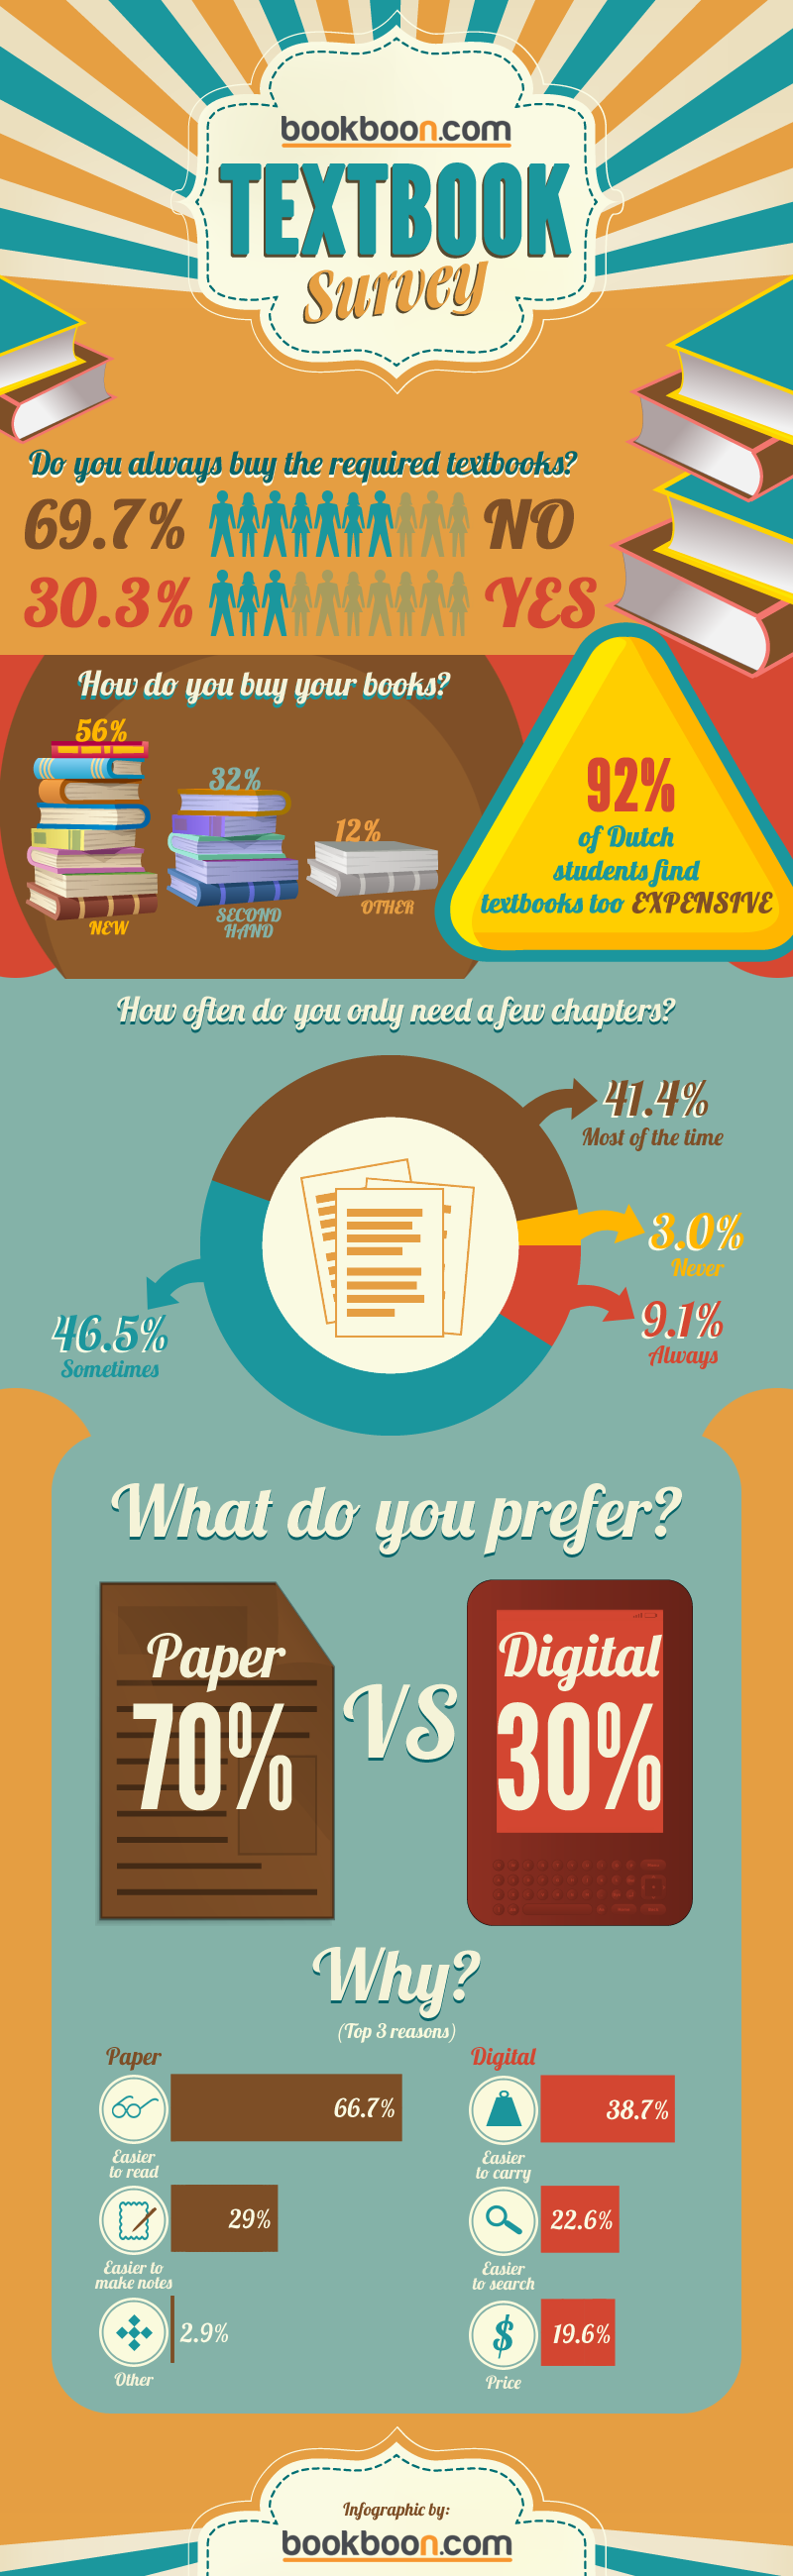 BOOKBOON_INFOGRAPHIC_V5.0_30082012.png